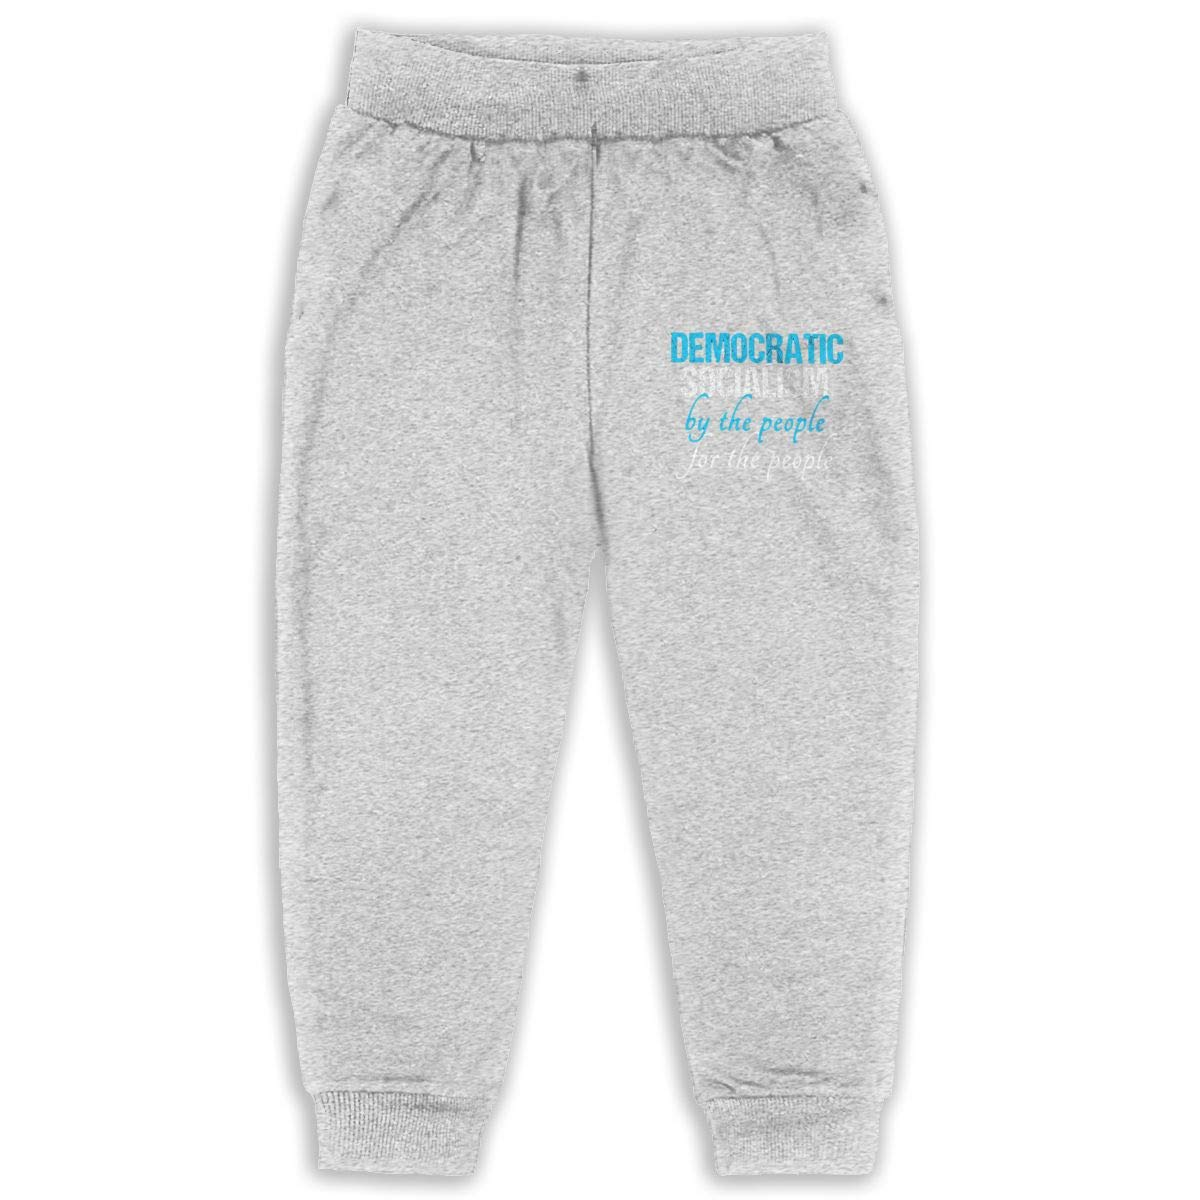 LFCLOSET Democratic Socialism by The People for The People Children Active Jogger Sweatpants Basic Elastic Sport Pants Black